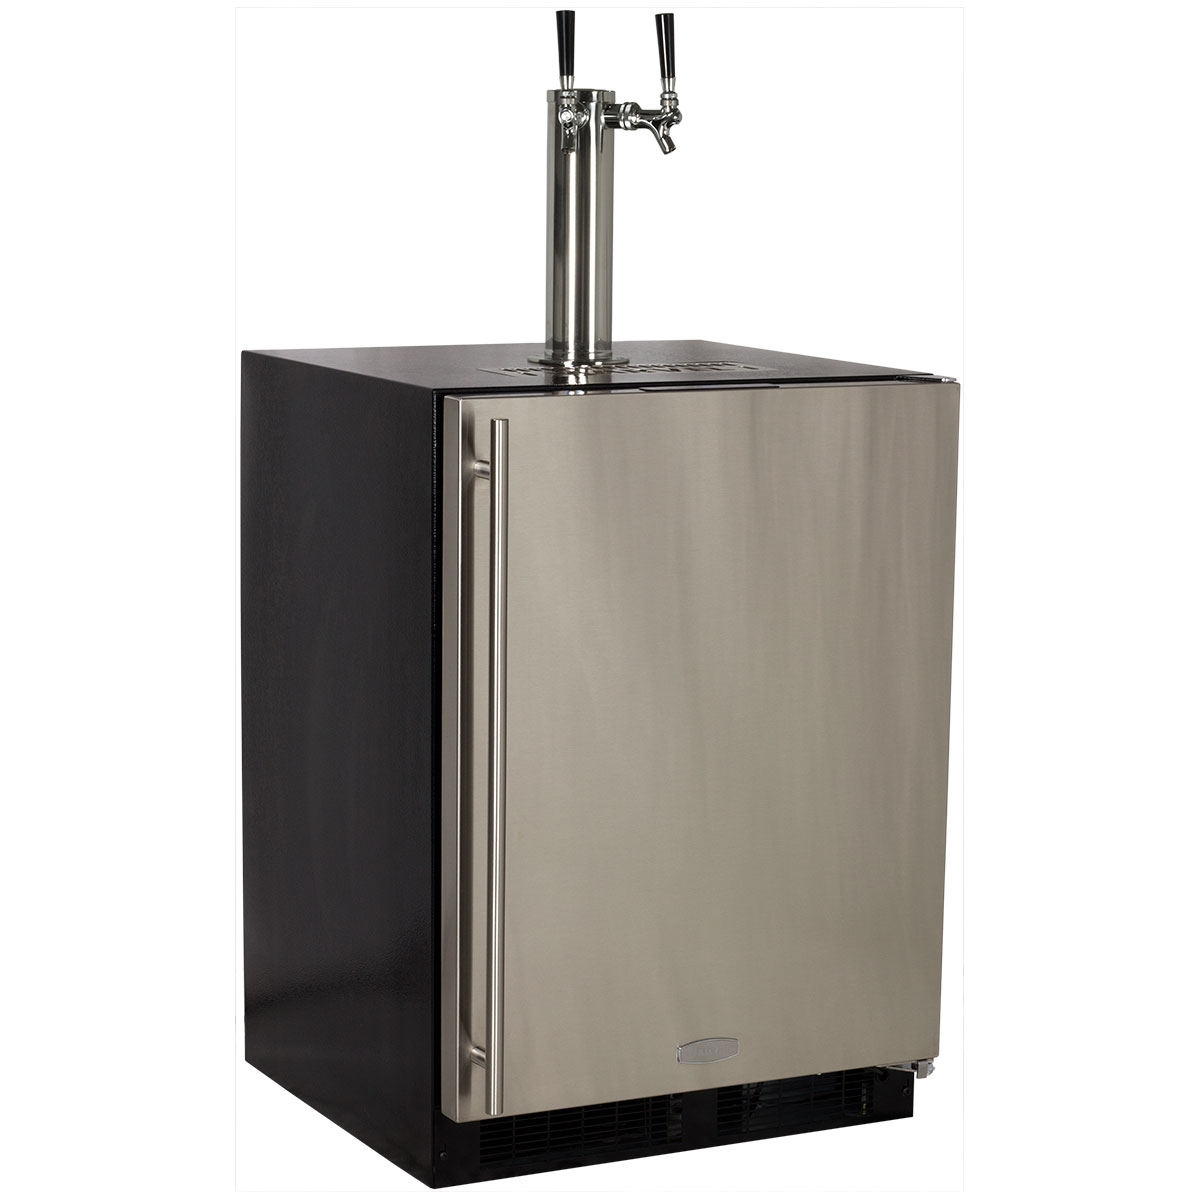 Marvel Built-In Indoor Twin Tap Beer Dispenser-Solid Stainless Steel Door Left Hinge